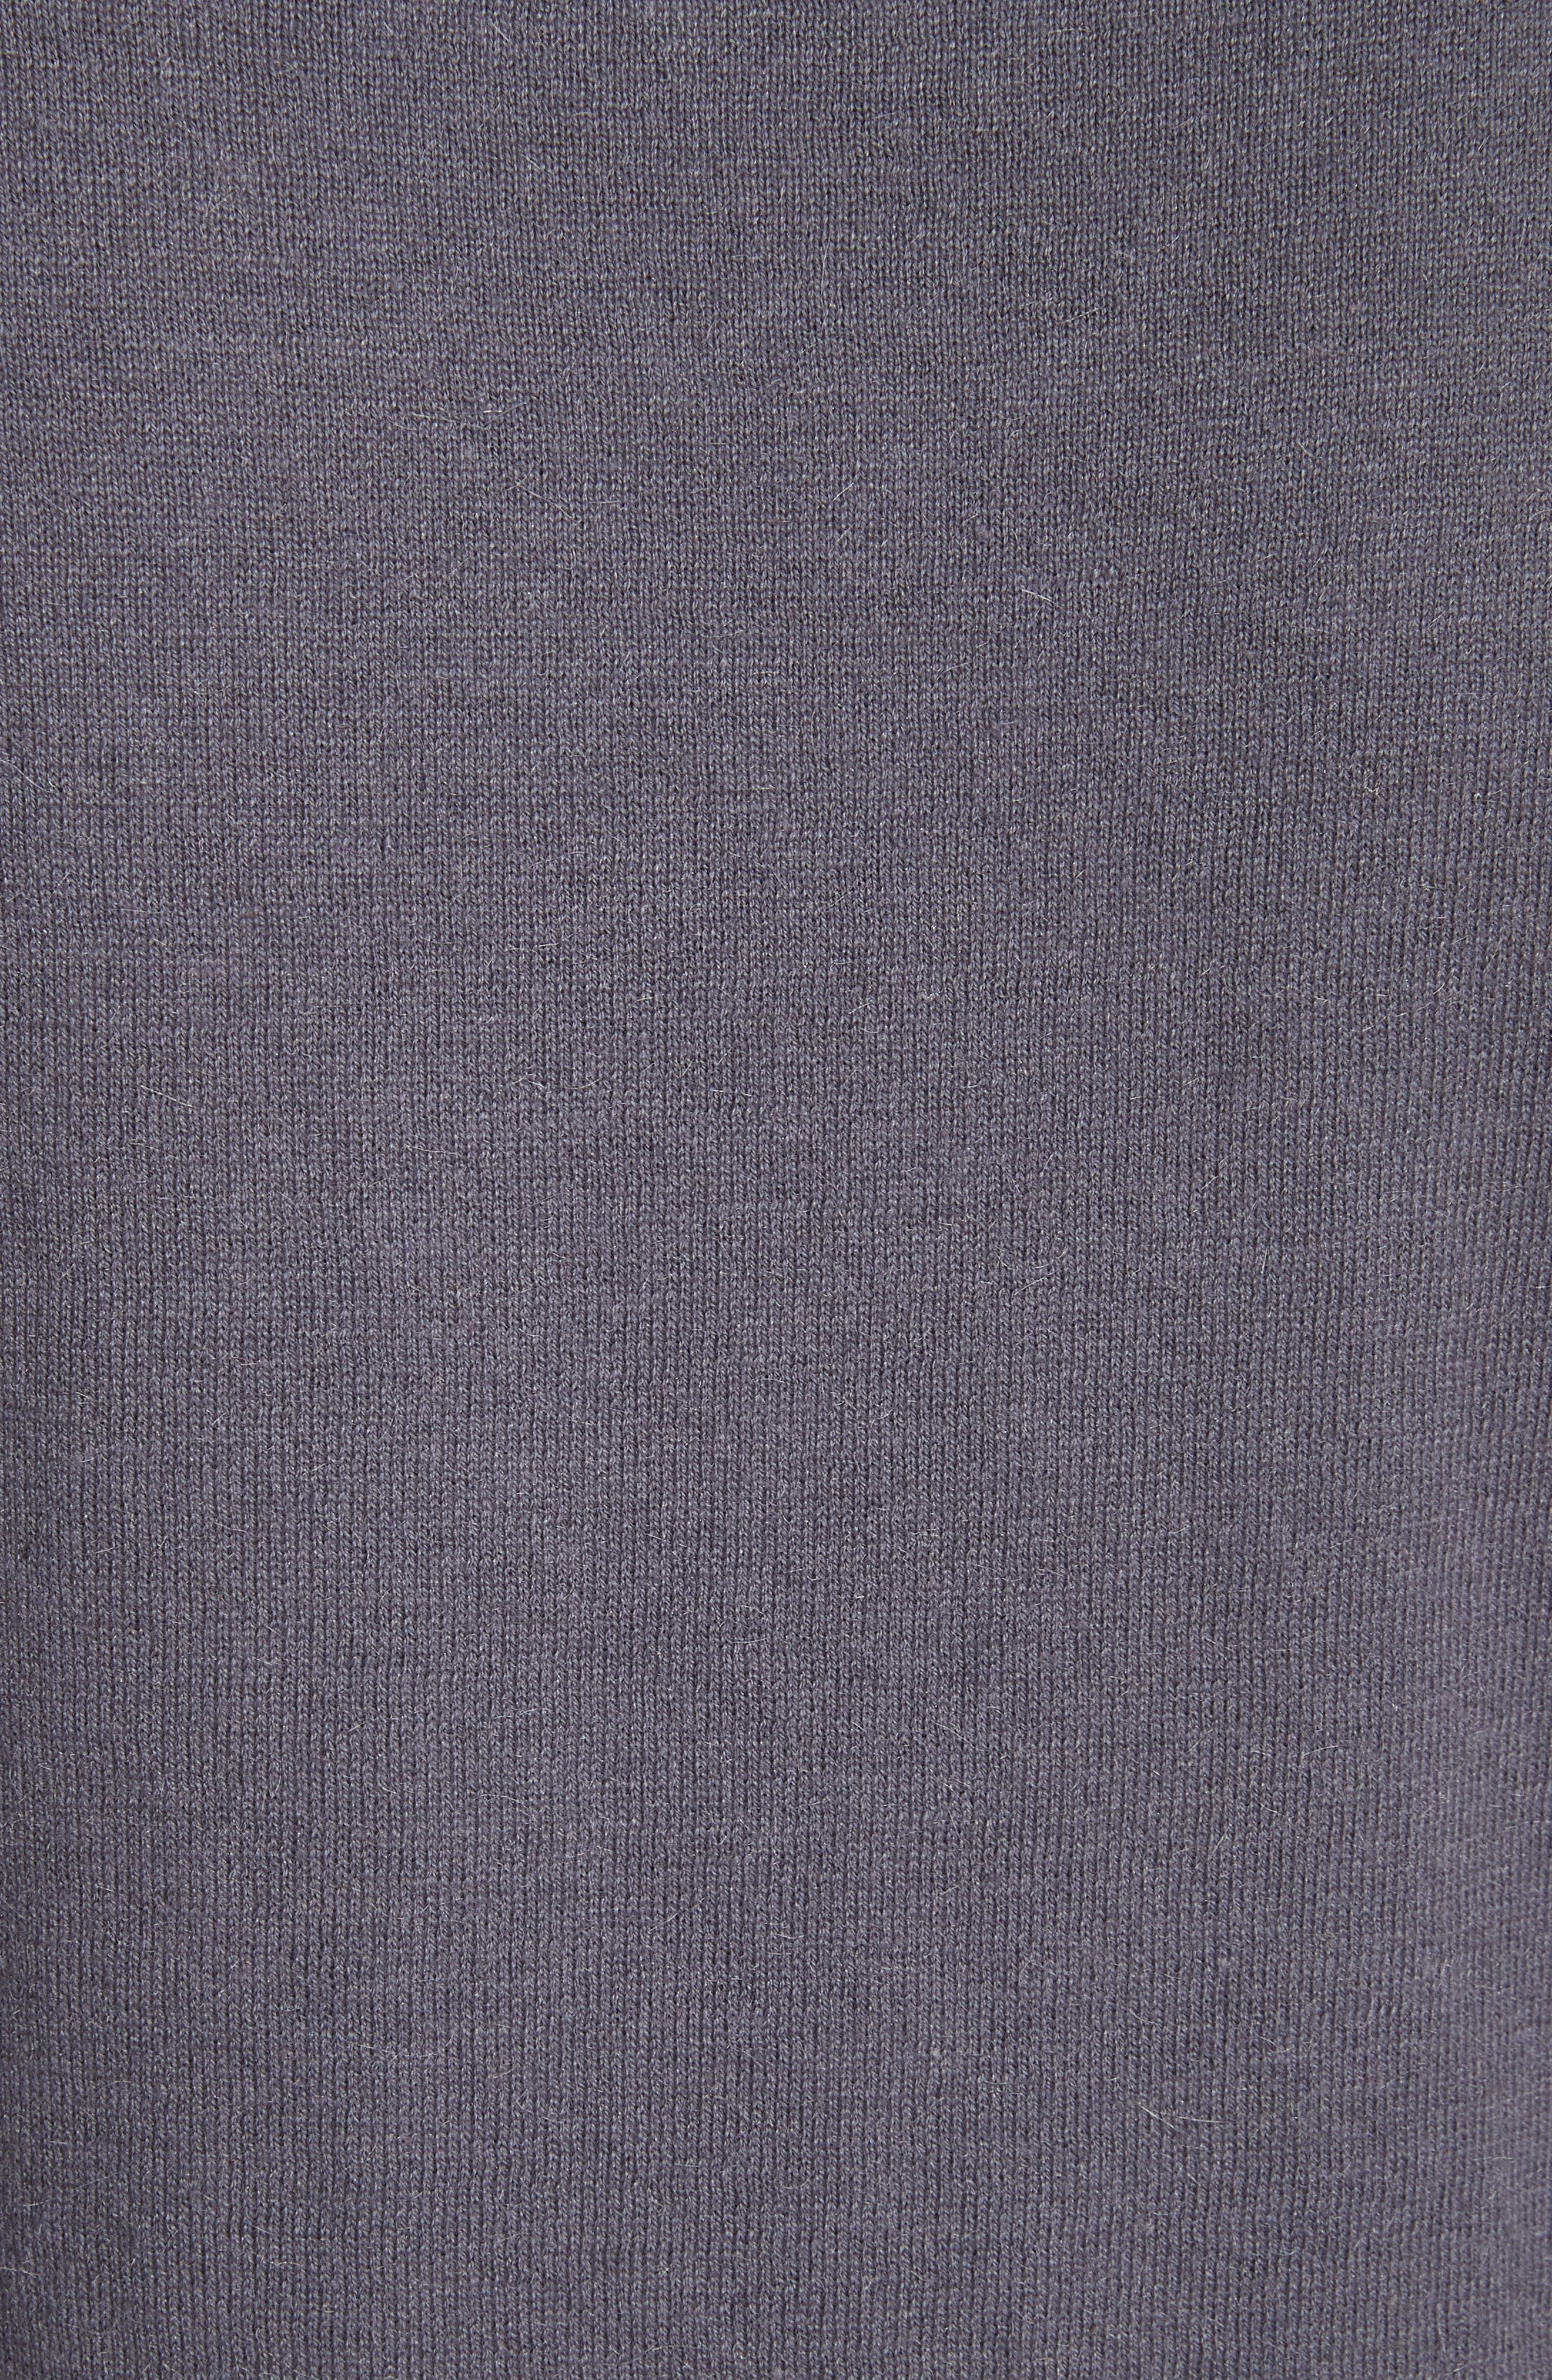 Chatswoth Woven Front Sweater,                             Alternate thumbnail 5, color,                             030